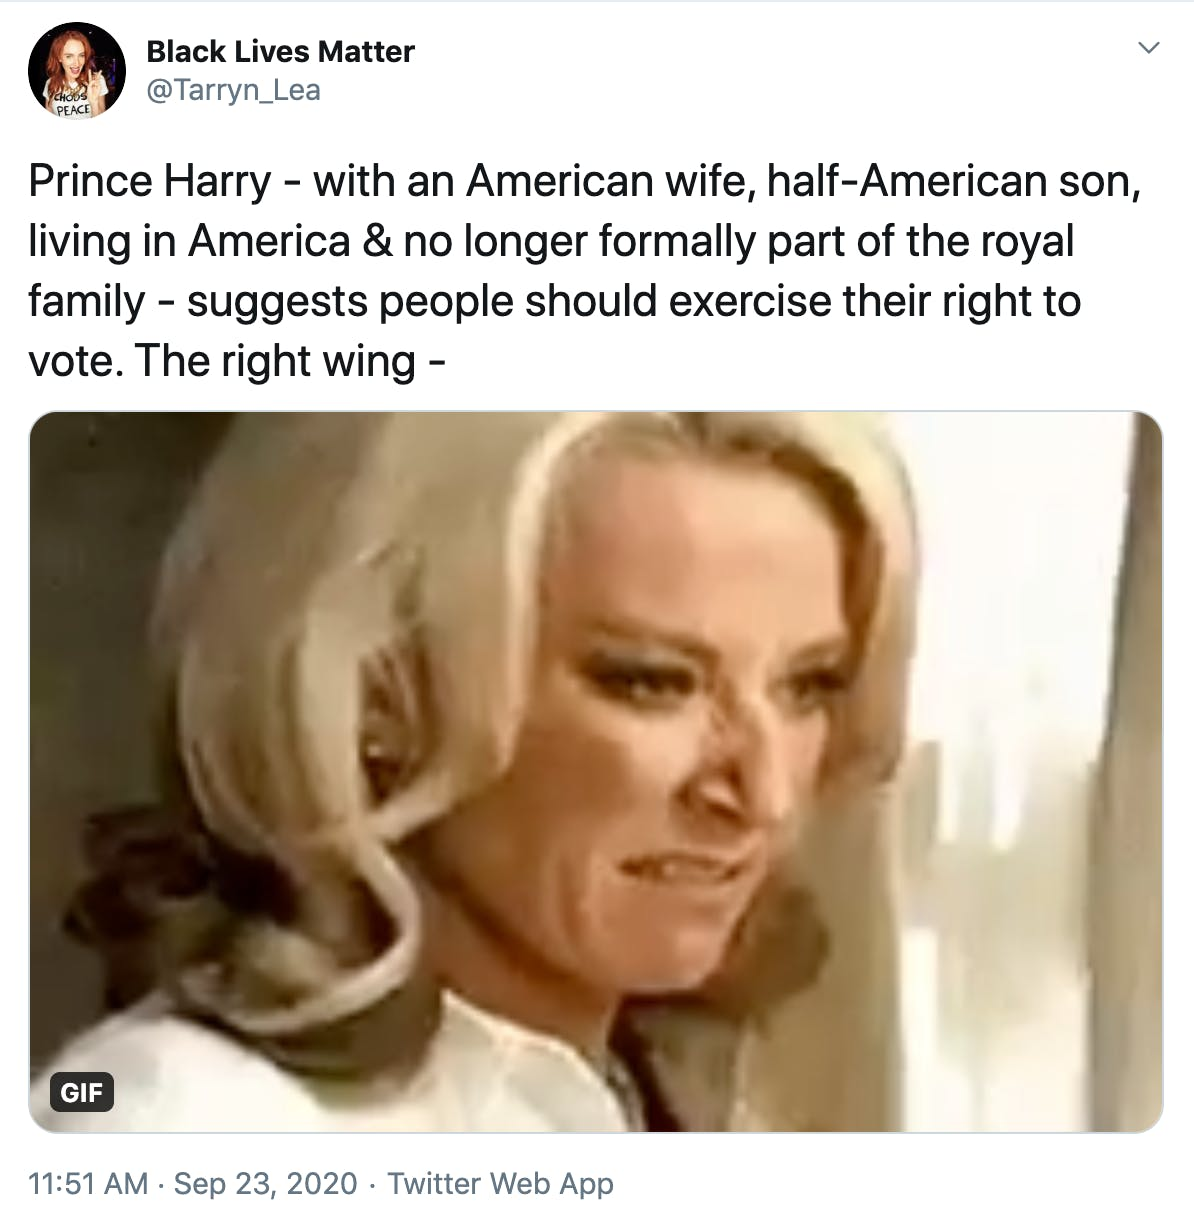 """Prince Harry - with an American wife, half-American son, living in America & no longer formally part of the royal family - suggests people should exercise their right to vote. The right wing -"" gif of blonde woman smashing things"